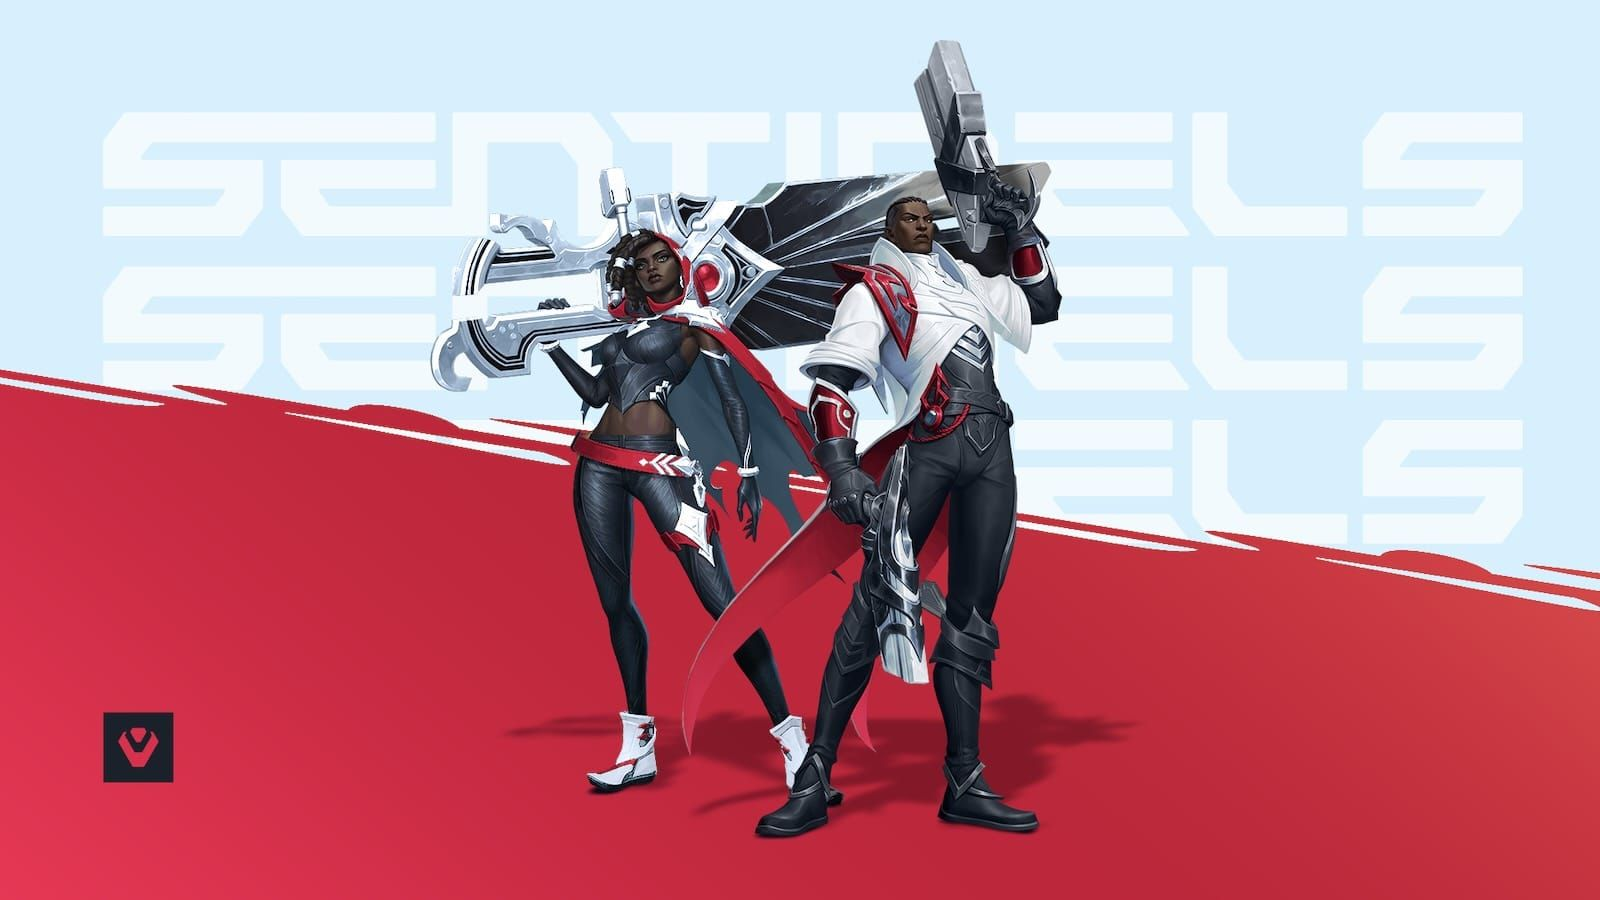 Image of two Wild Rift characters in Sentinels esports team uniforms and a red and light gray background